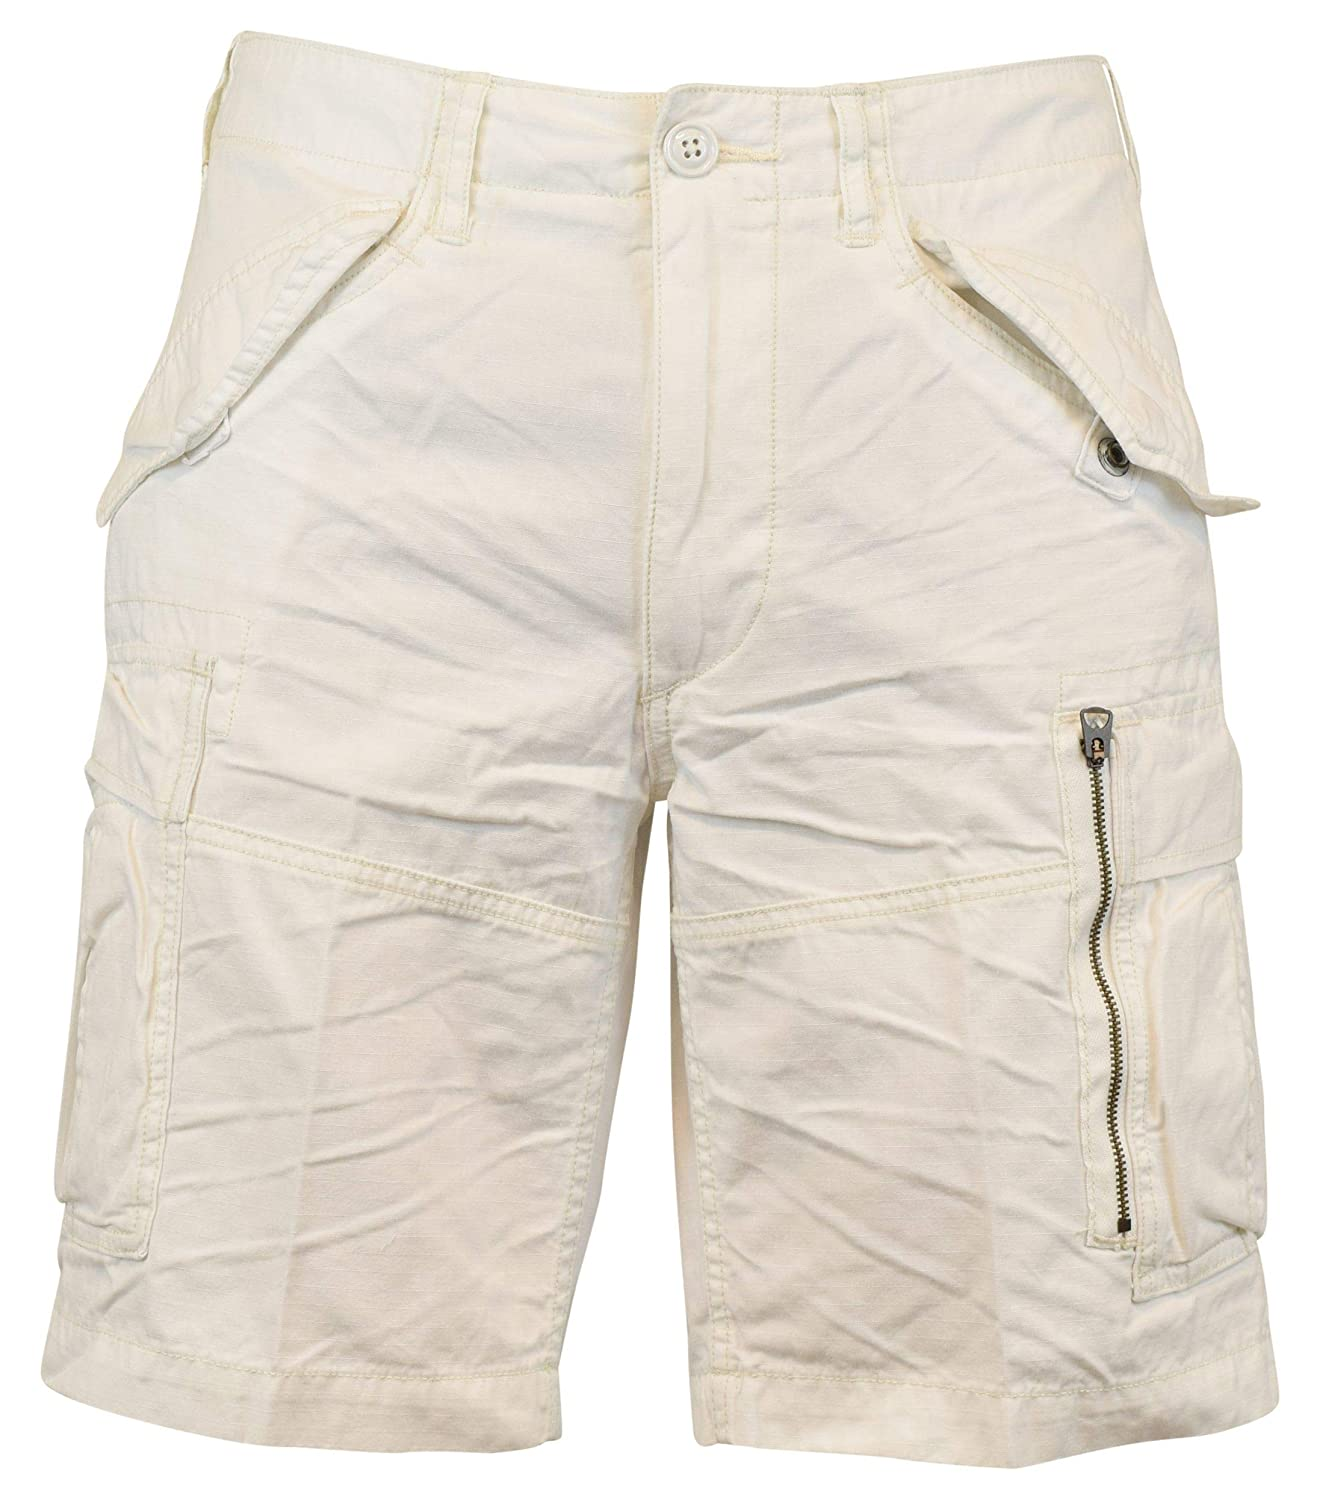 bde41d650 Polo Ralph Lauren Men s Classic-Fit Ripstop Cotton Cargo Shorts - 42 - White